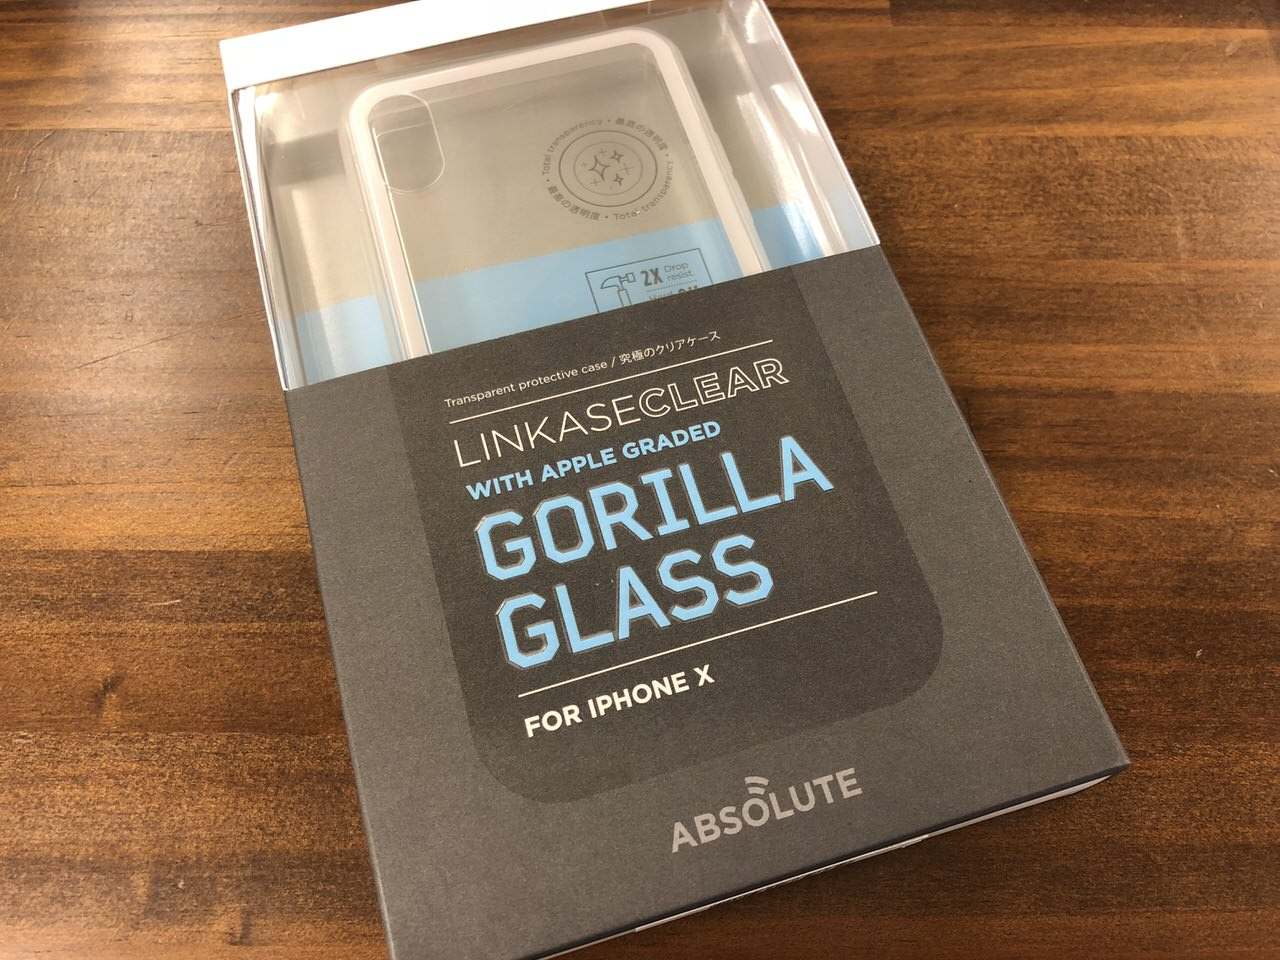 【iPhone X】ゴリラガラス使用の美麗ケース「ABSOLUTE・LINKASE CLEAR / Gorilla Glass for iPhone X」を使ってみました。